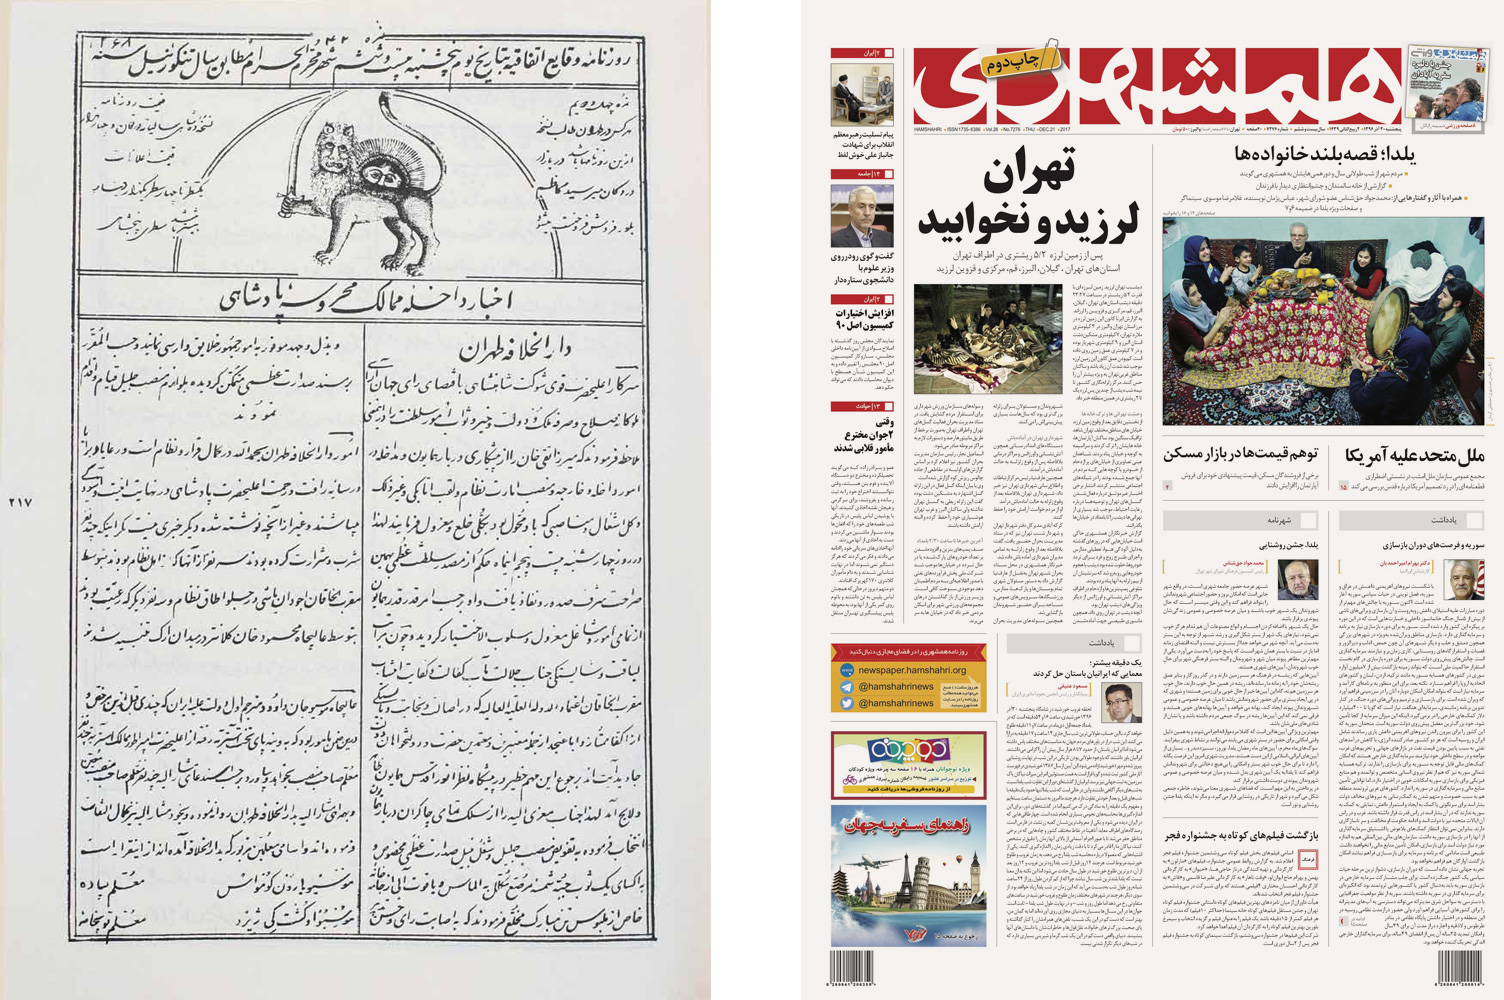 Left: Vaqaye-Ettefaghiye, the second Iranian newspaper published on 1851 Right: Hamshahri, one of the current newspapers in Iran